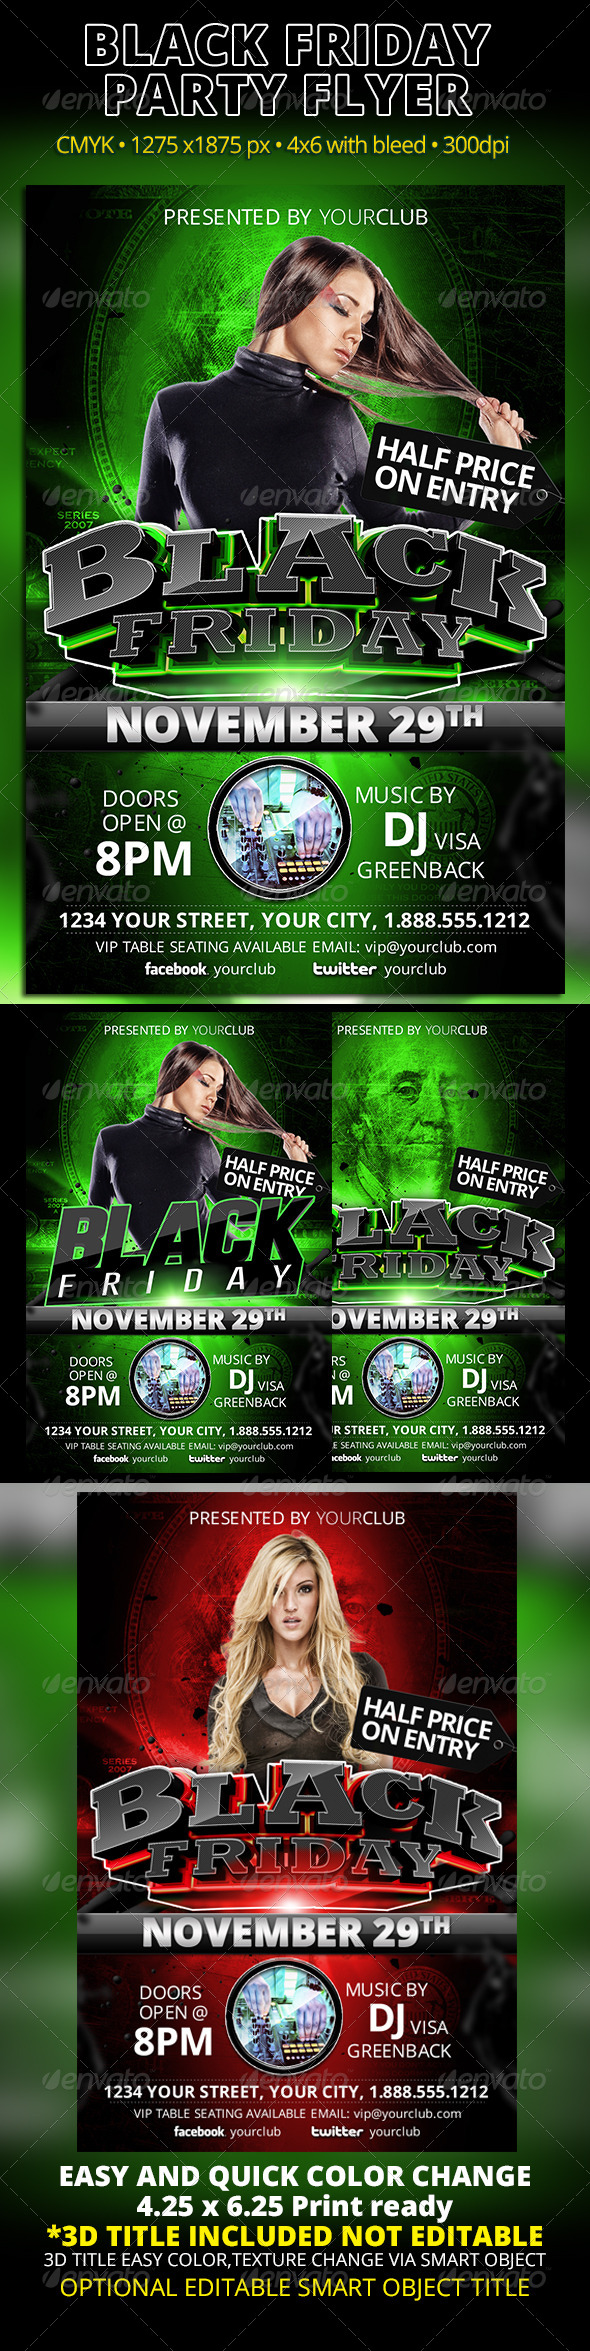 Black Friday Party Flyer - Events Flyers